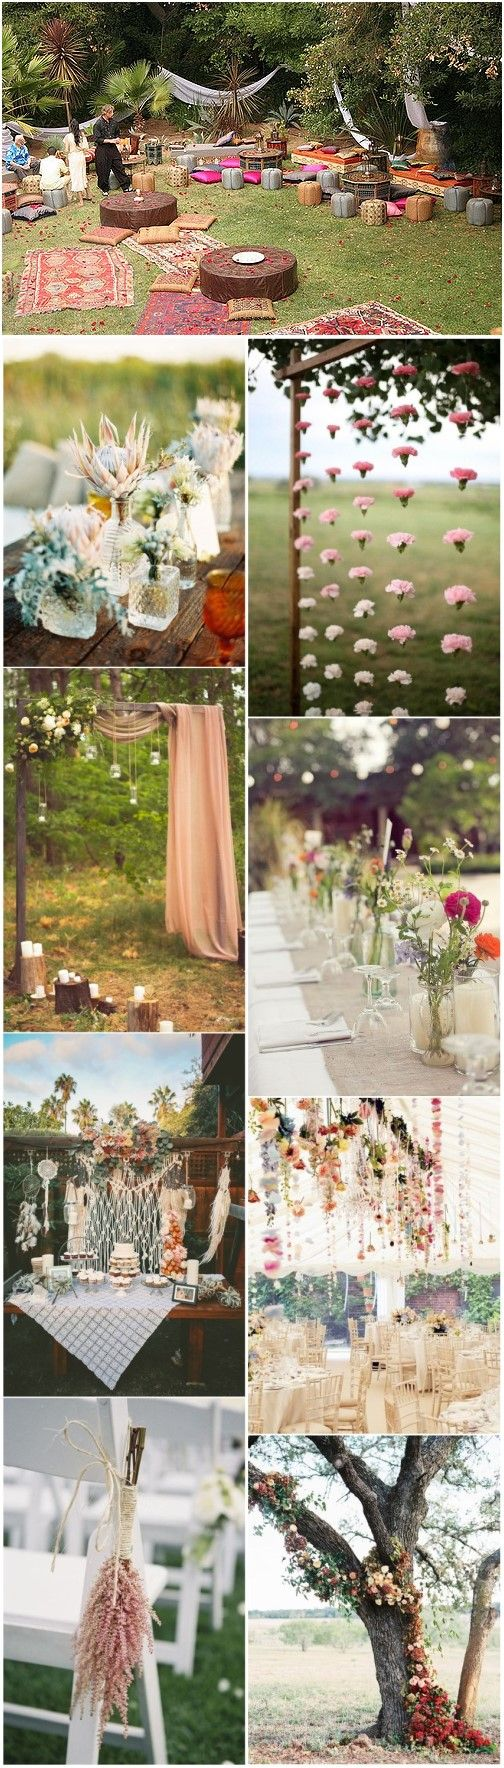 20+ gorgeous boho wedding décor ideas on pinterest | wedding